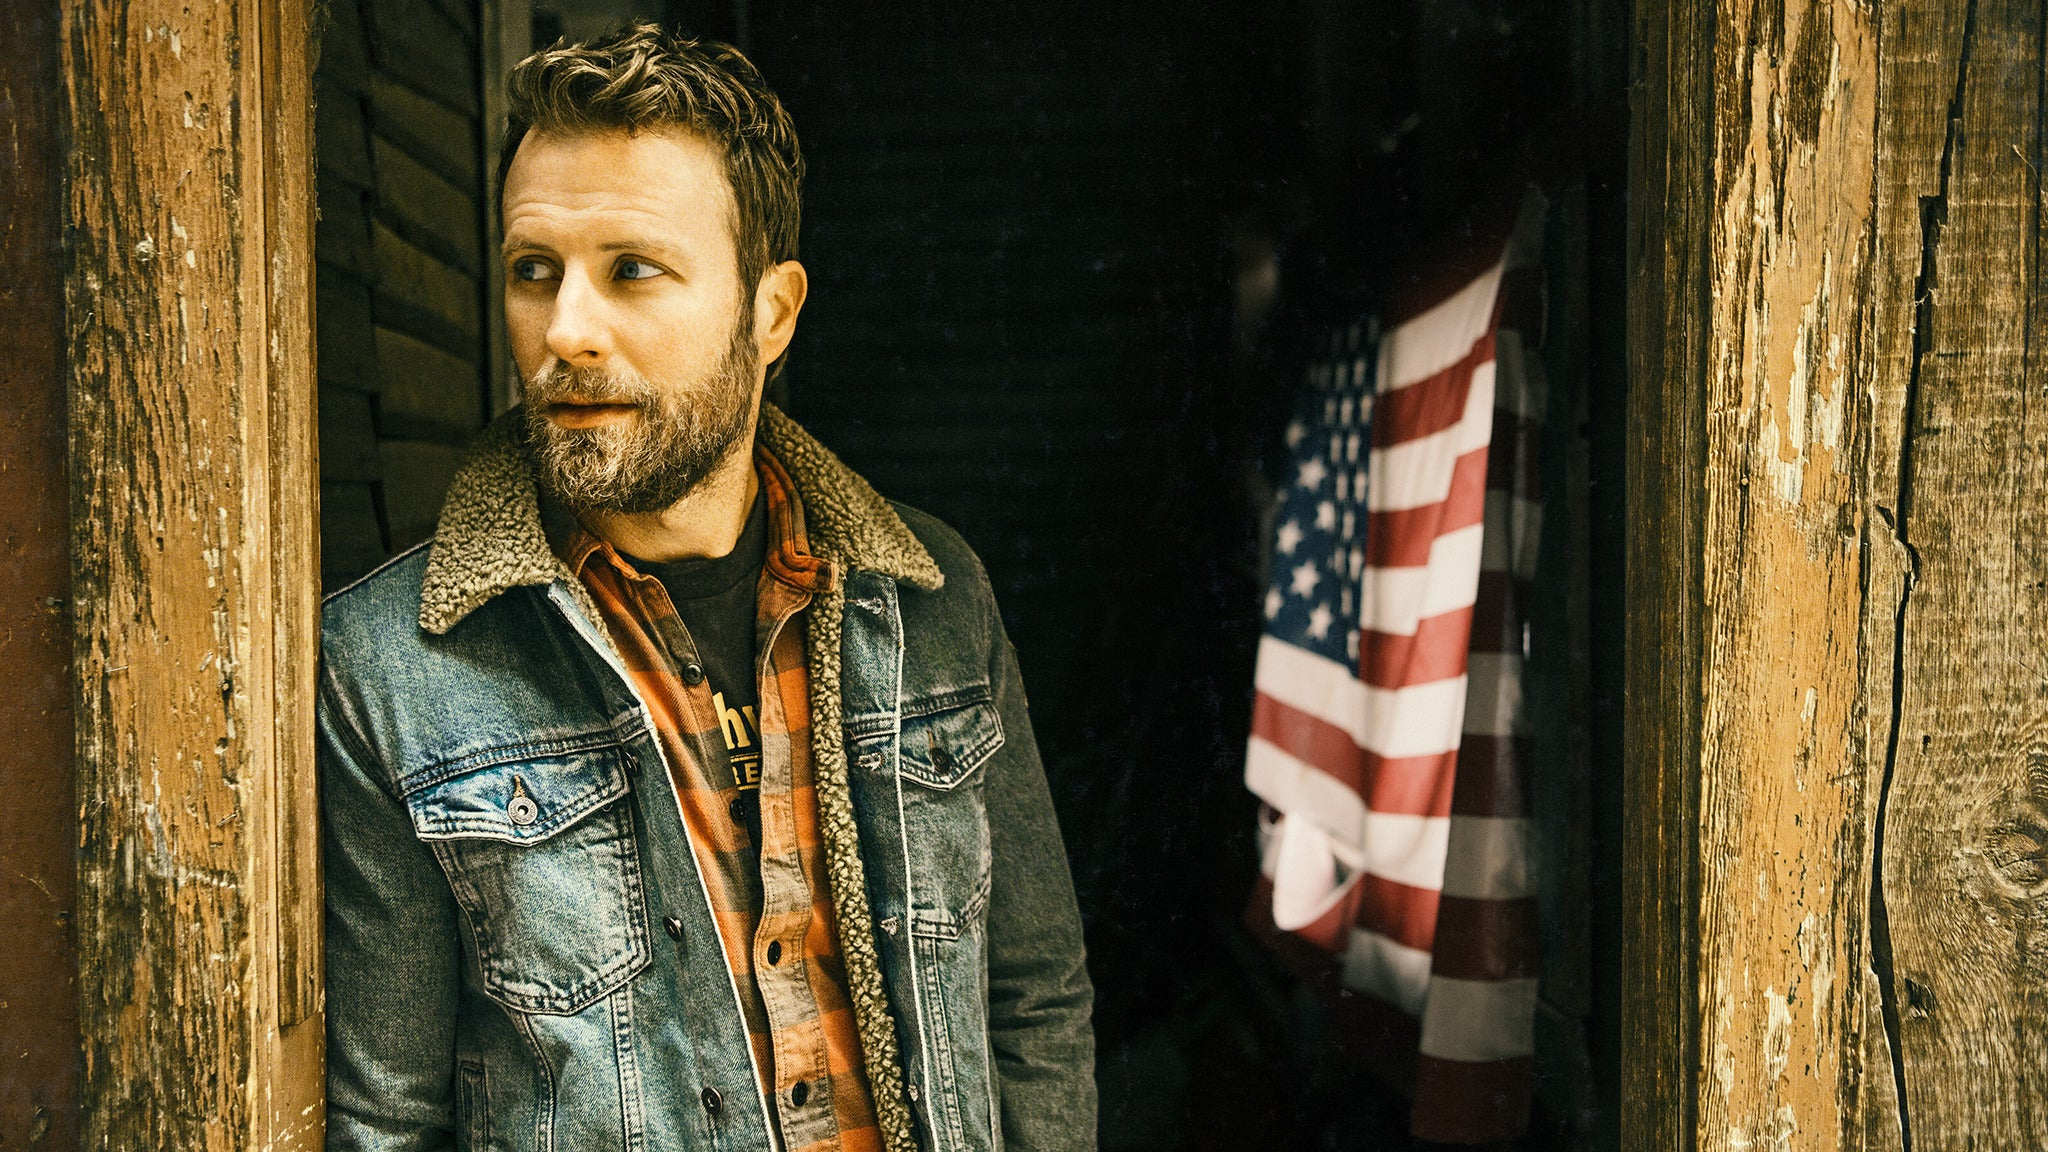 Dierks Bentley Burning Man Tour 2019 at Spokane Arena